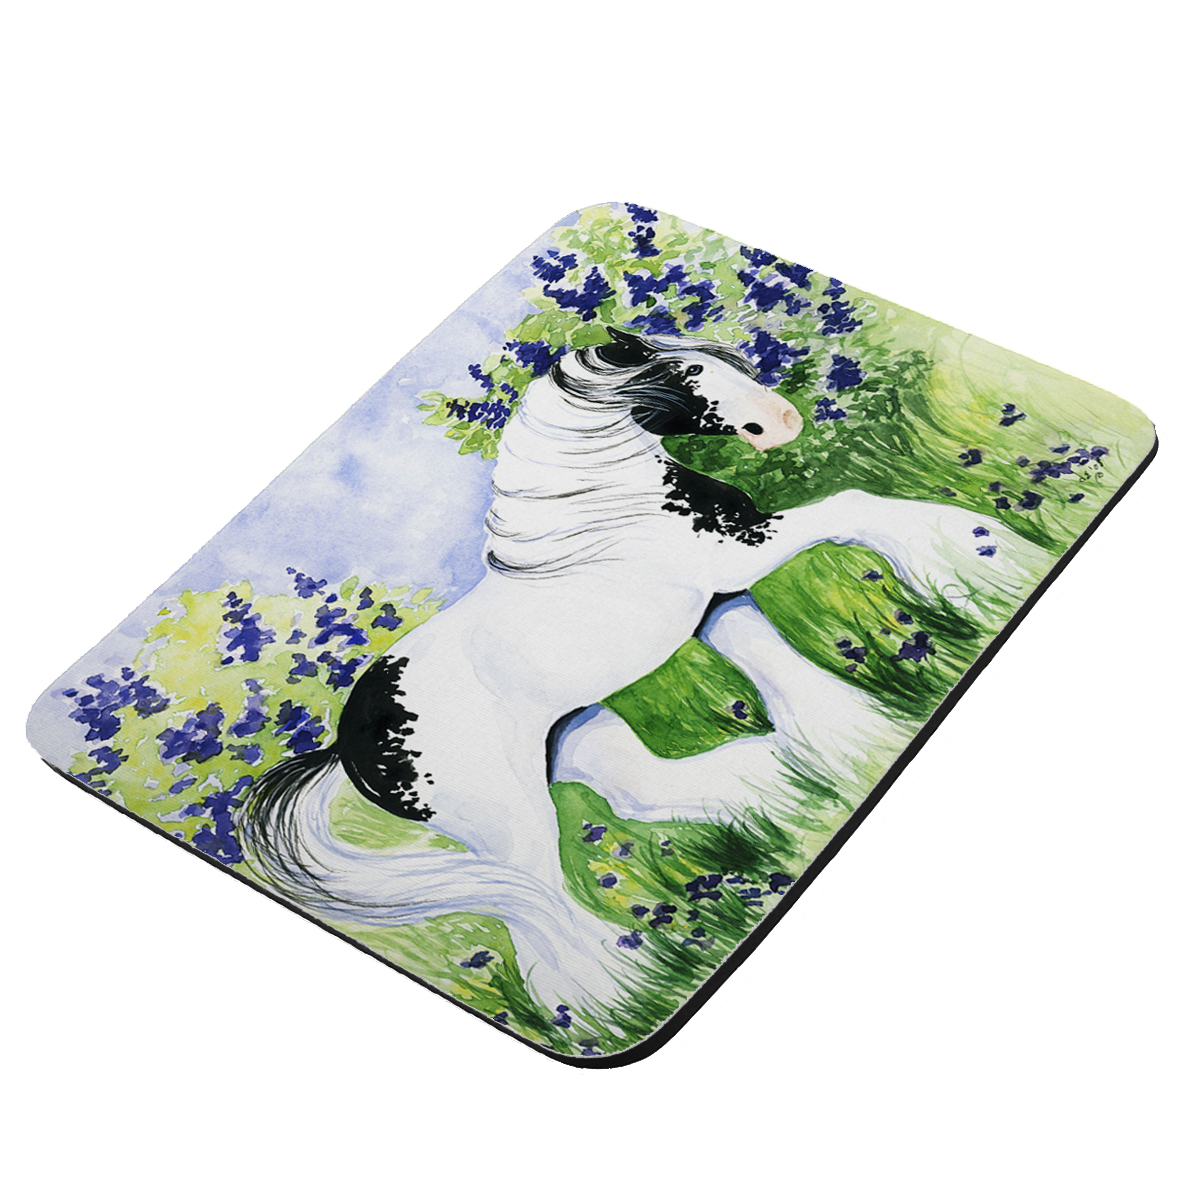 Piebald Gypsy Cob with Lilacs and Violets Horse Art by Denise Every - KuzmarK Mousepad / Hot Pad / Trivet